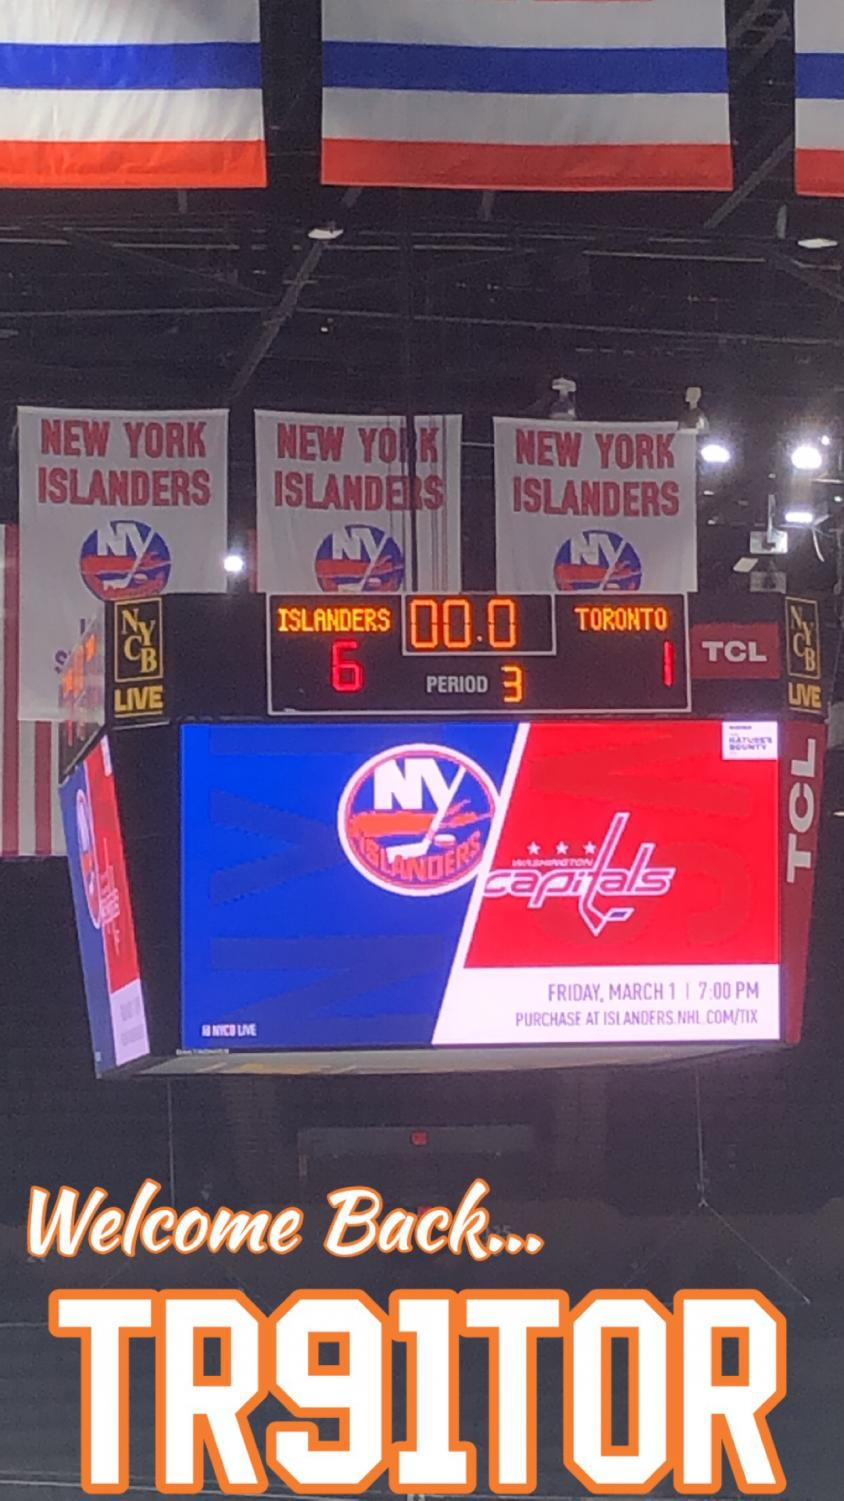 The most highly anticipated game of the year as the NYI fans